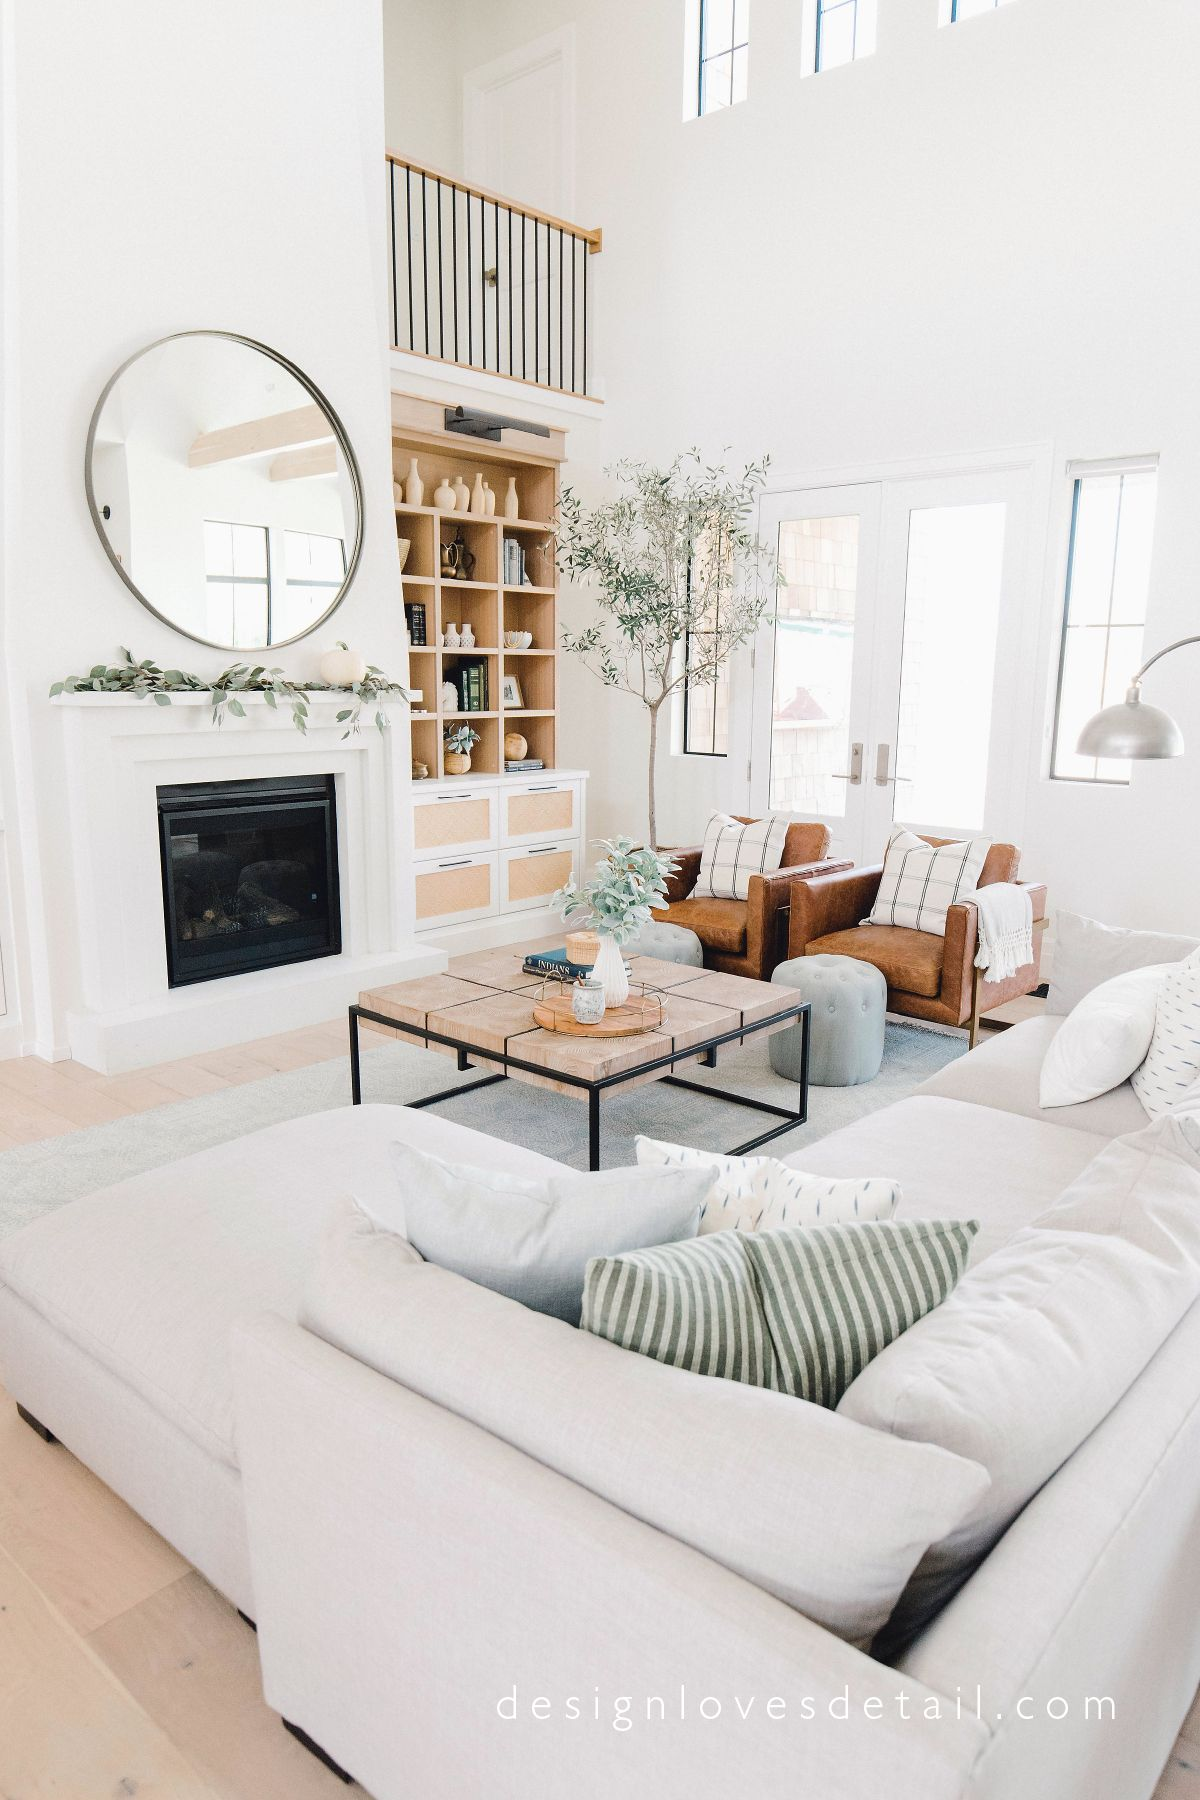 White living room dog kids ikea the everymom at home decor also rh pinterest